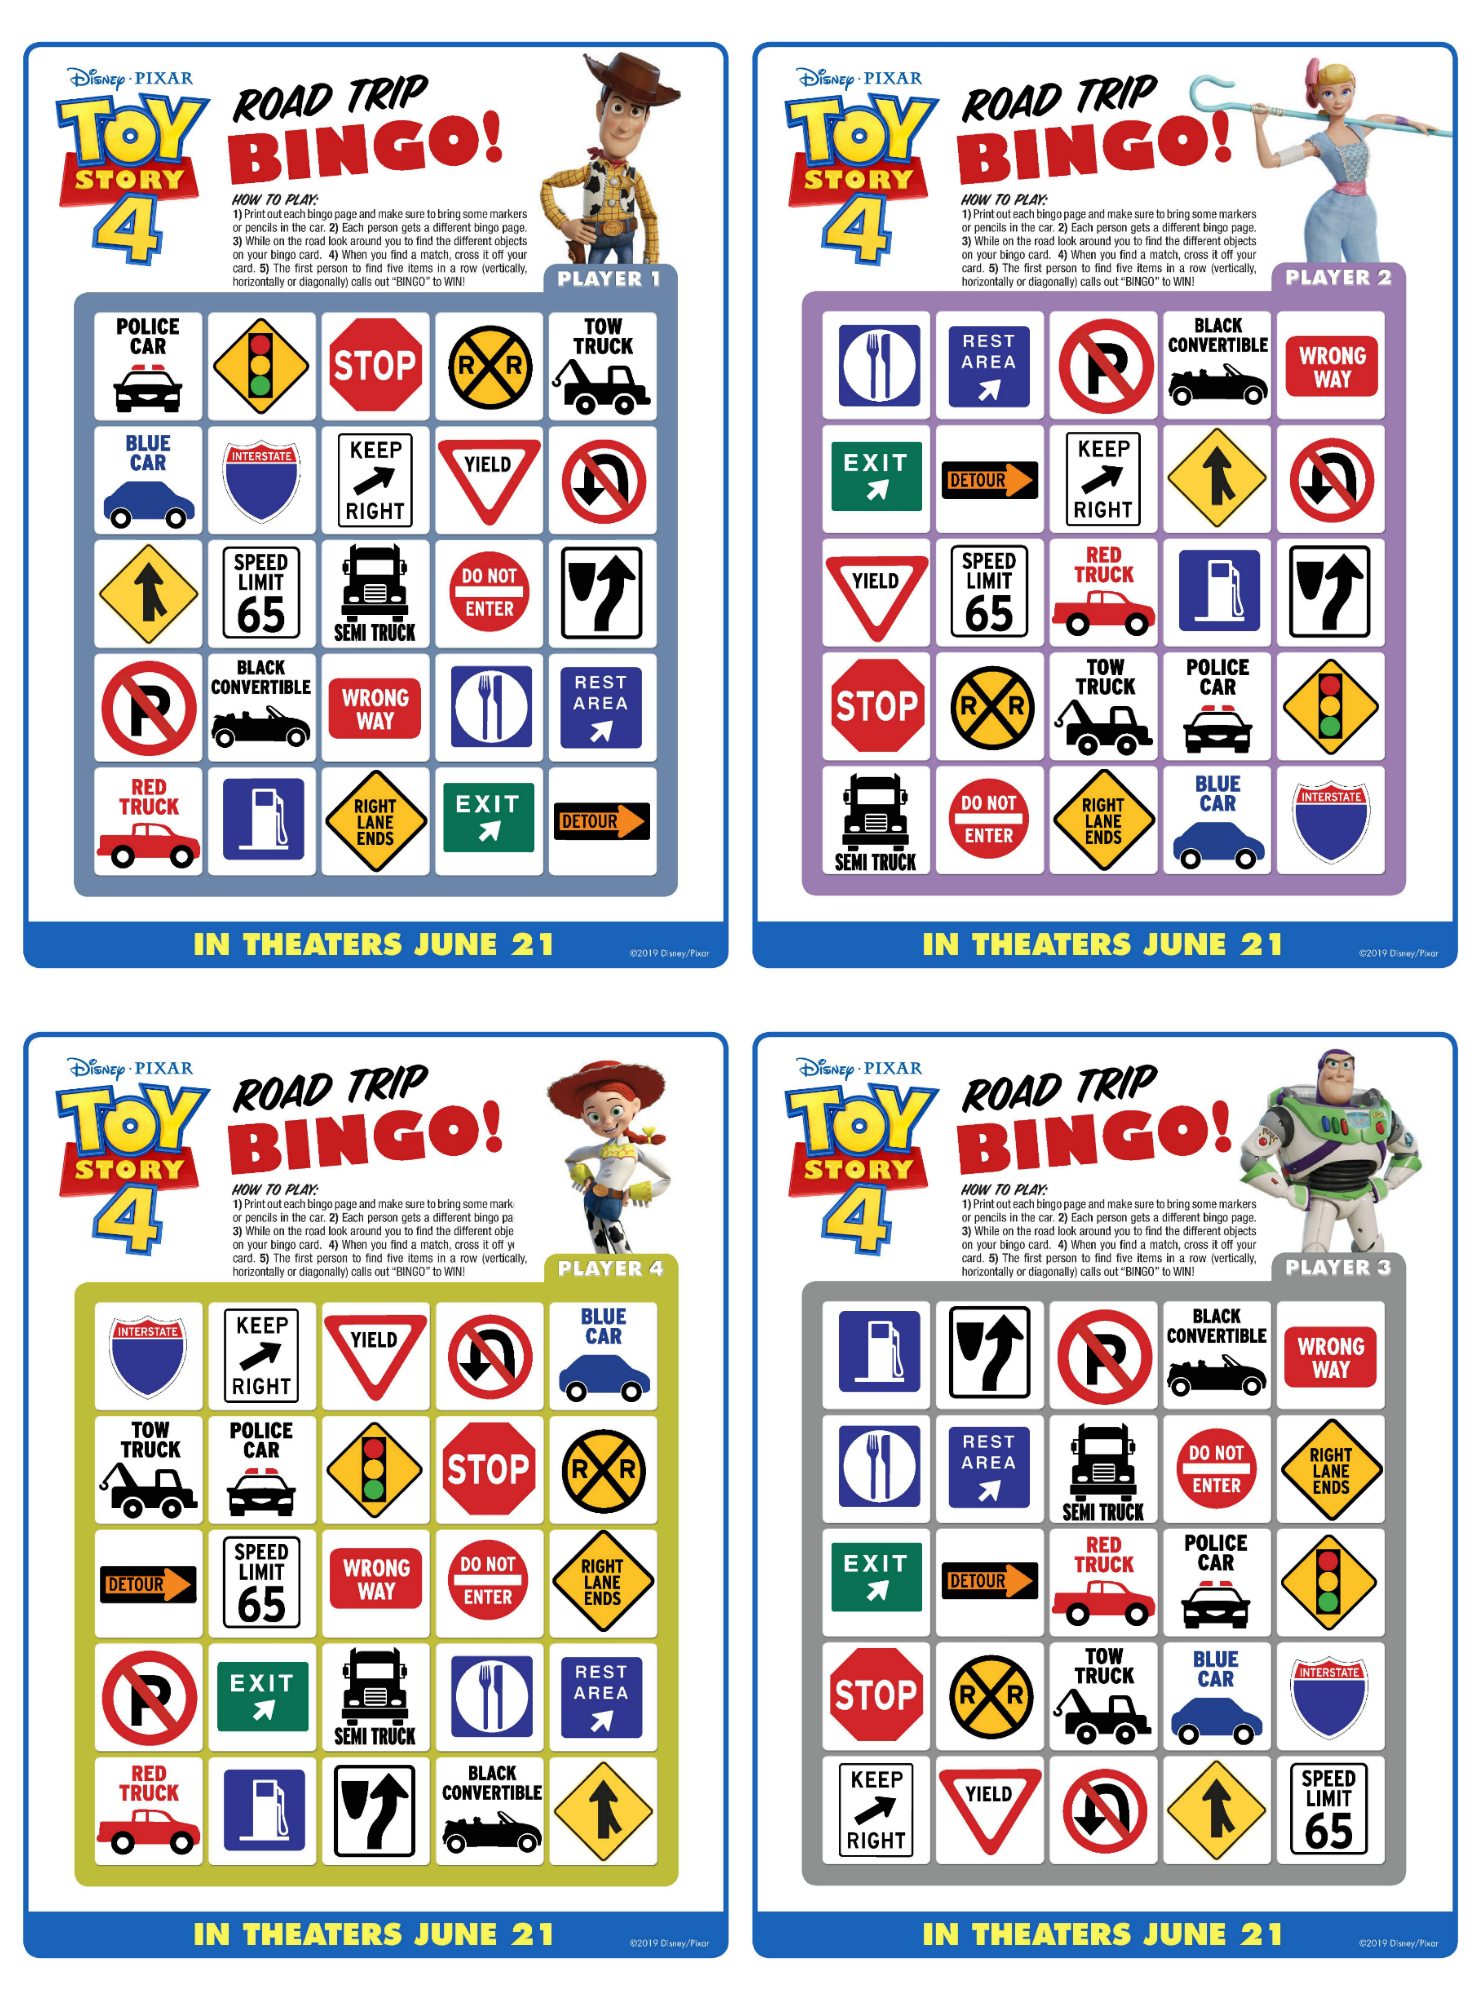 photo about Travel Bingo Printable called Toy Tale 4 Printable Street Holiday vacation Bingo For Spouse and children Holiday